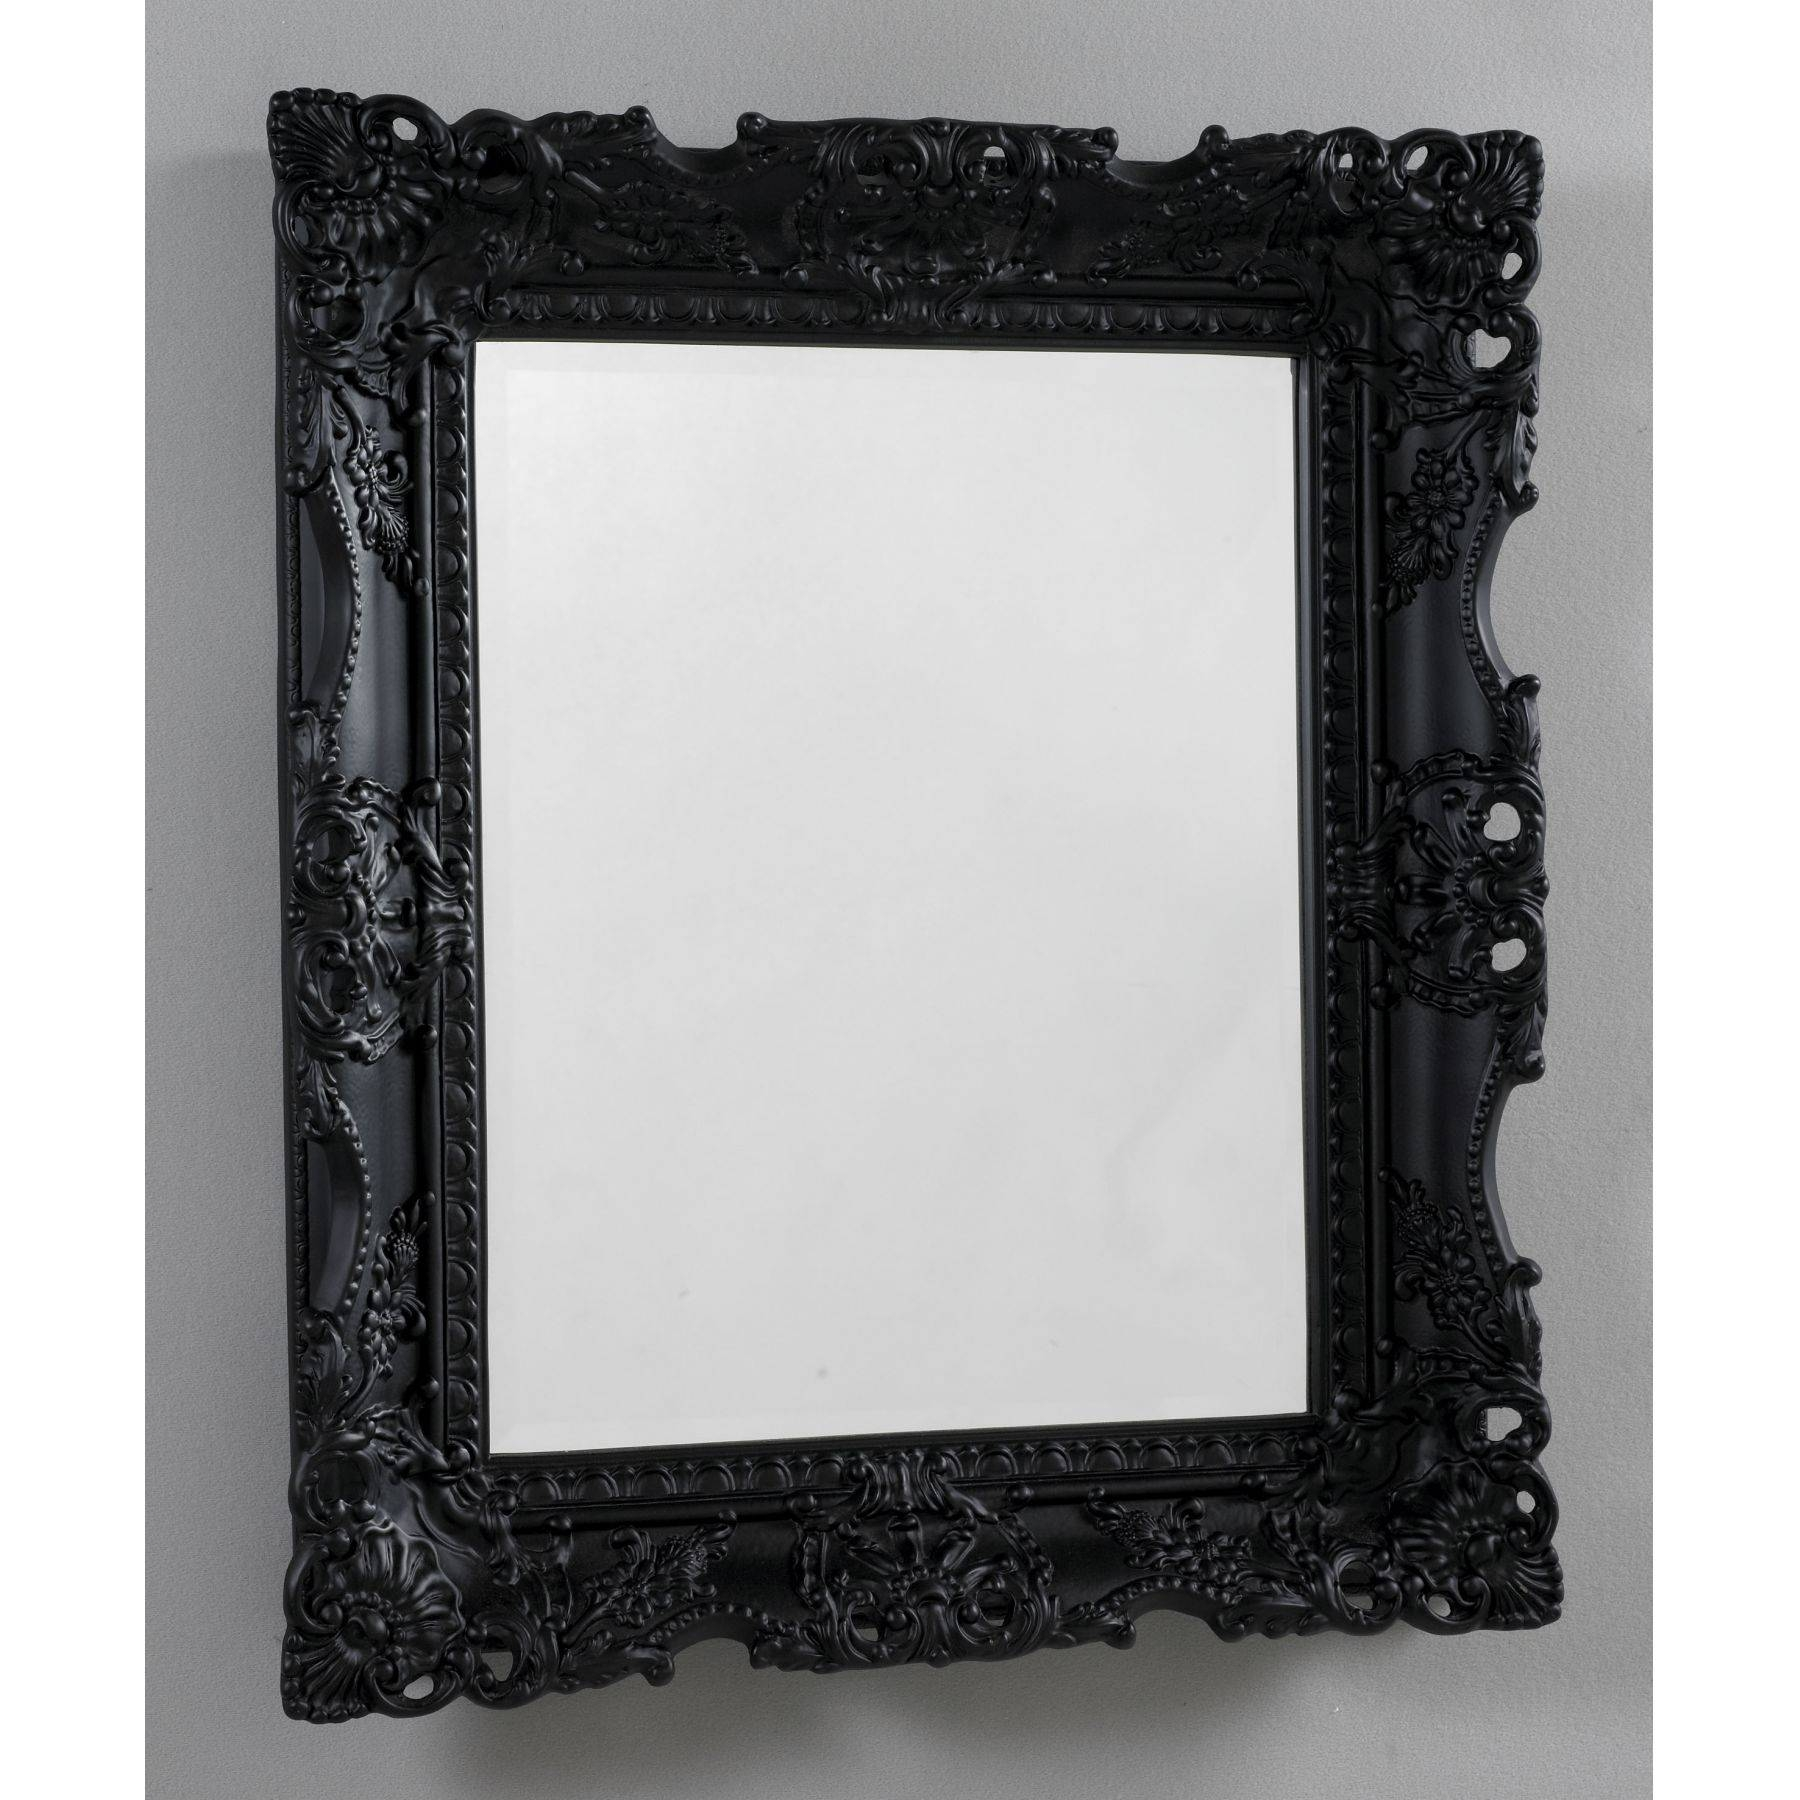 Home Decor: Antique French Black Mirror Black Mirror – Home Decor pertaining to Antique Black Mirrors (Image 5 of 15)